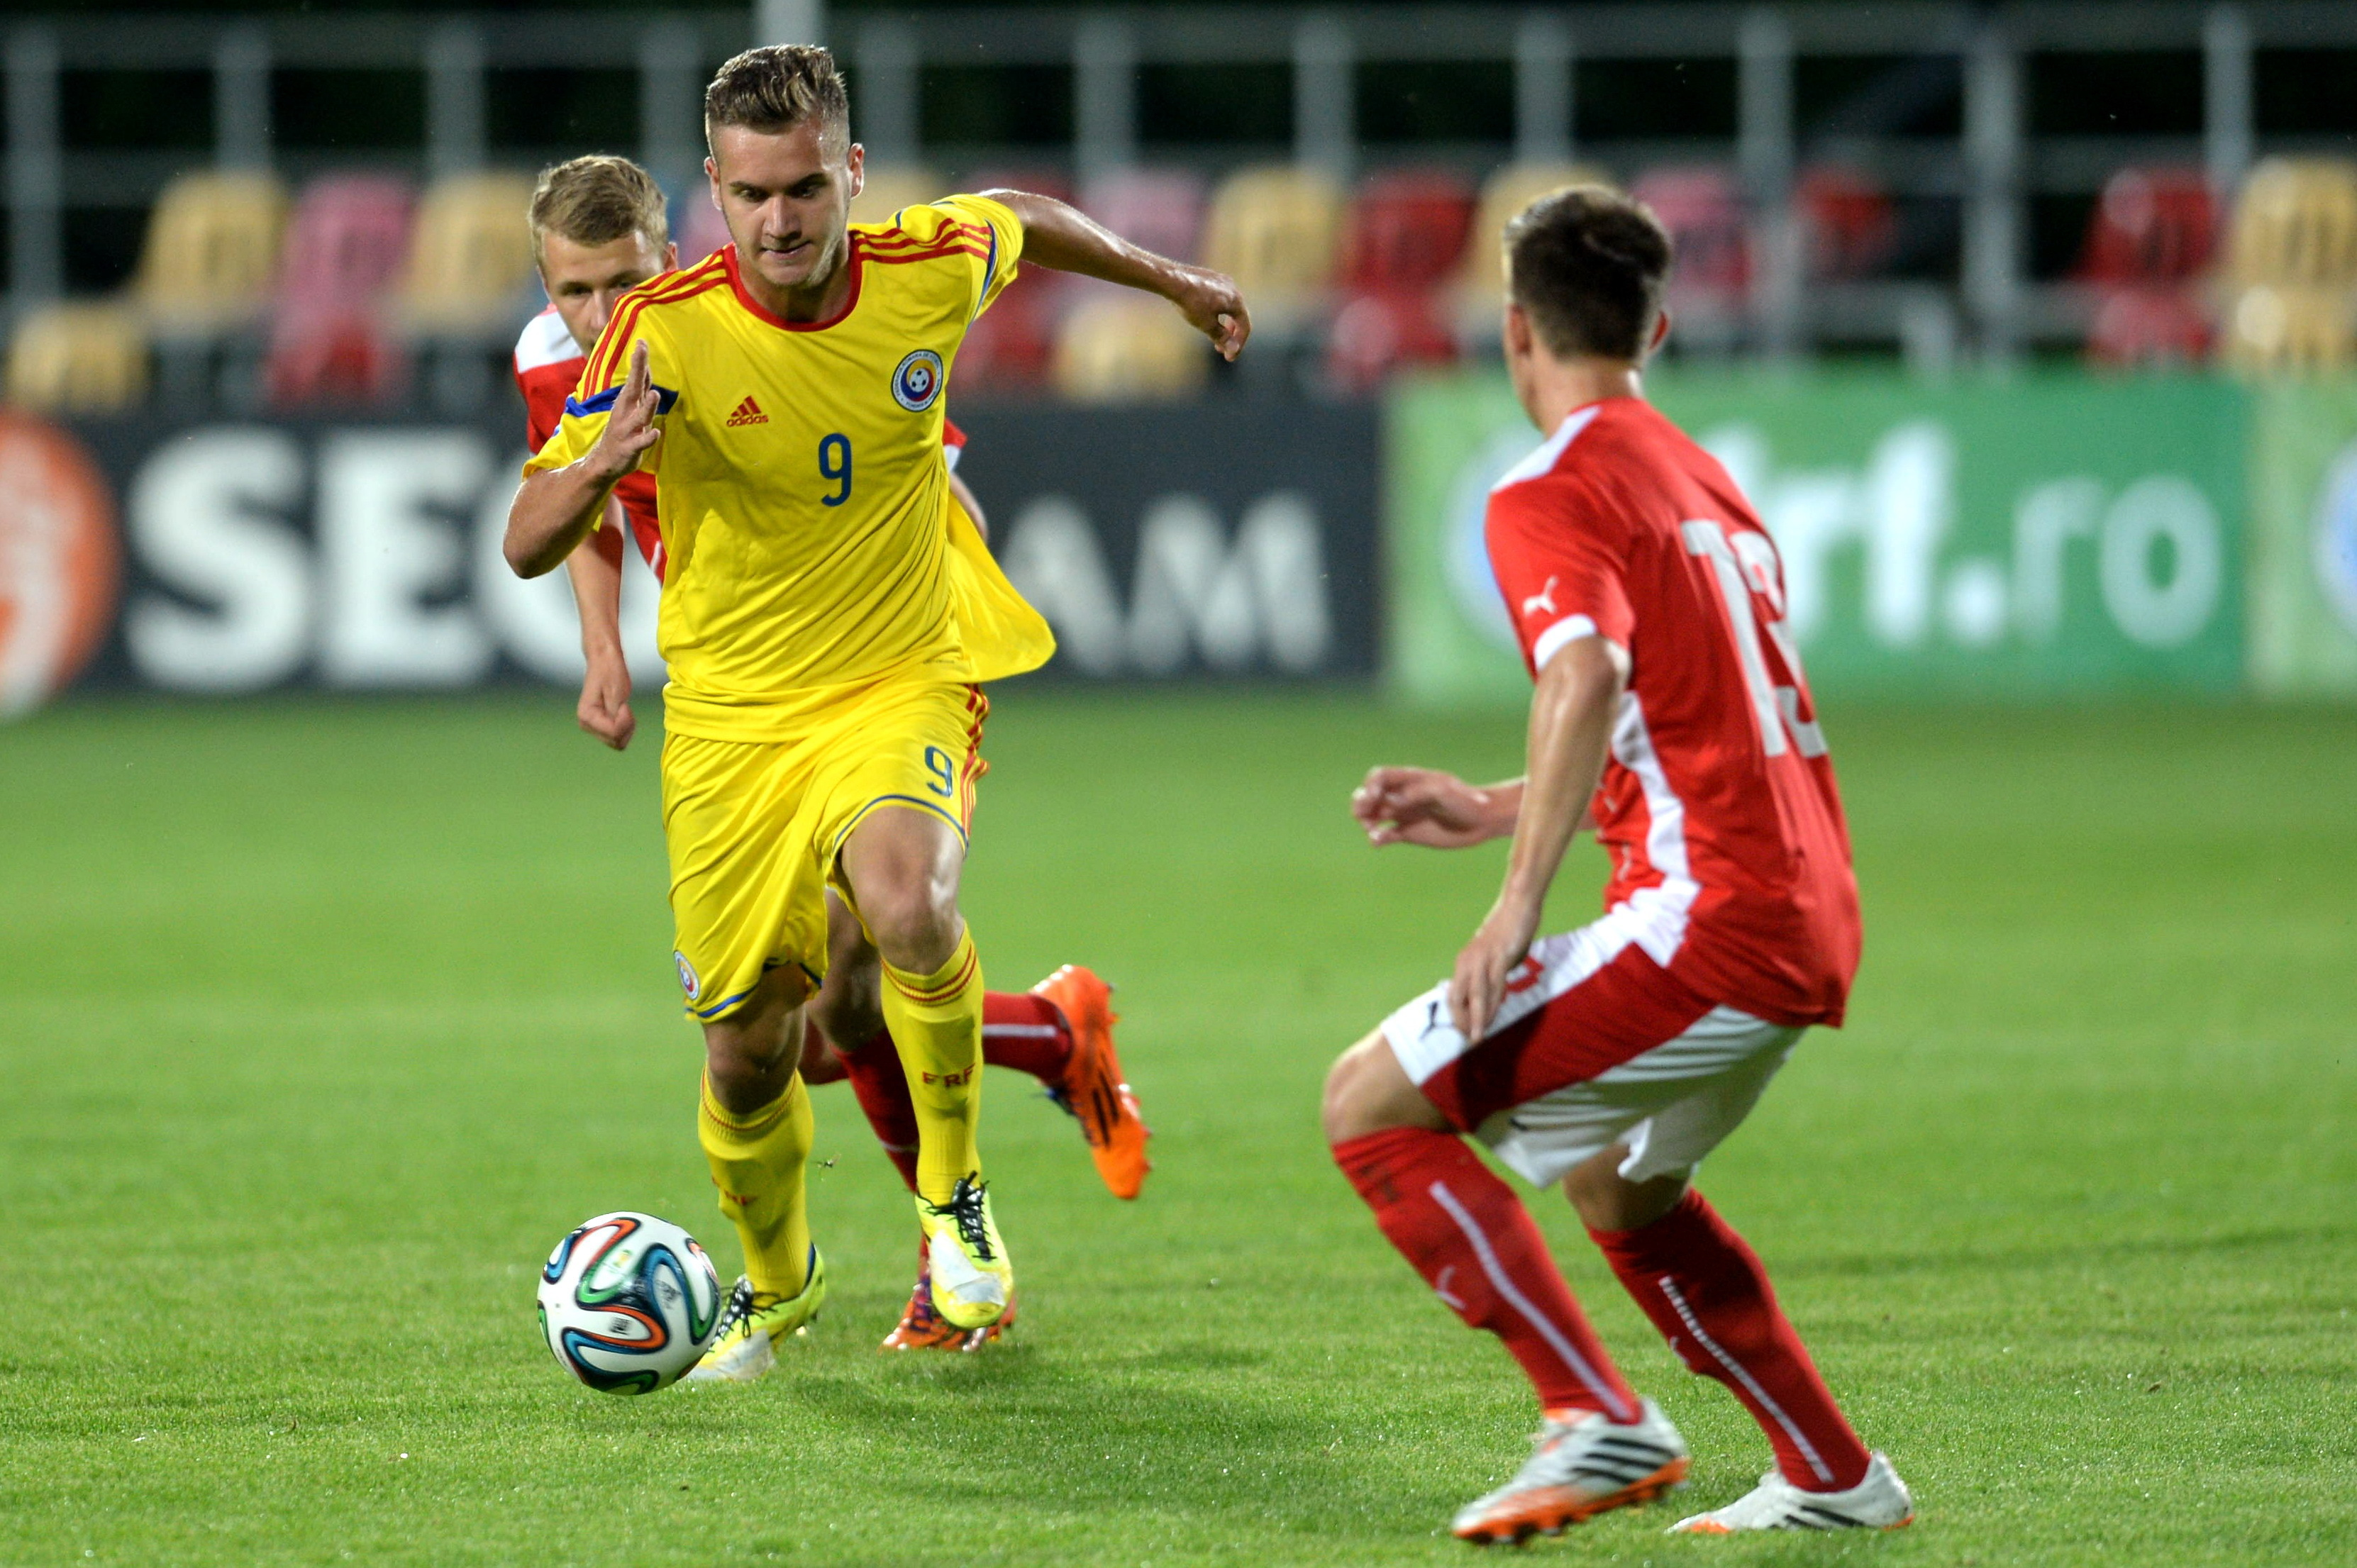 FOTBAL - AMICAL - JUNIORI - ROMANIA - AUSTRIA